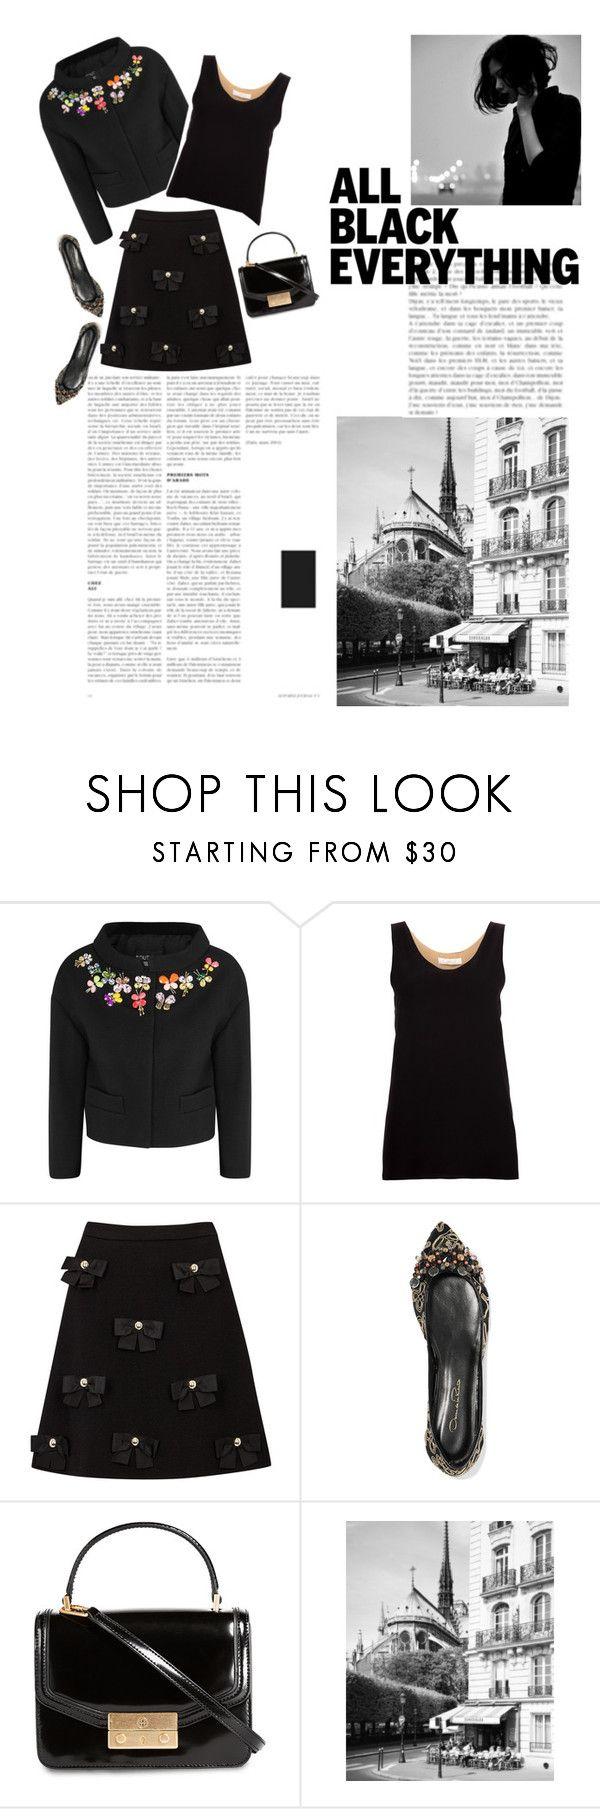 """""""On A Rainy Sunday Afternoon"""" by mgoslin ❤ liked on Polyvore featuring Boutique Moschino, Chloé, Oscar de la Renta, Tory Burch, allblackoutfit, embellishedblackjacket, embellishedblackskirt and embellishrdshoes"""